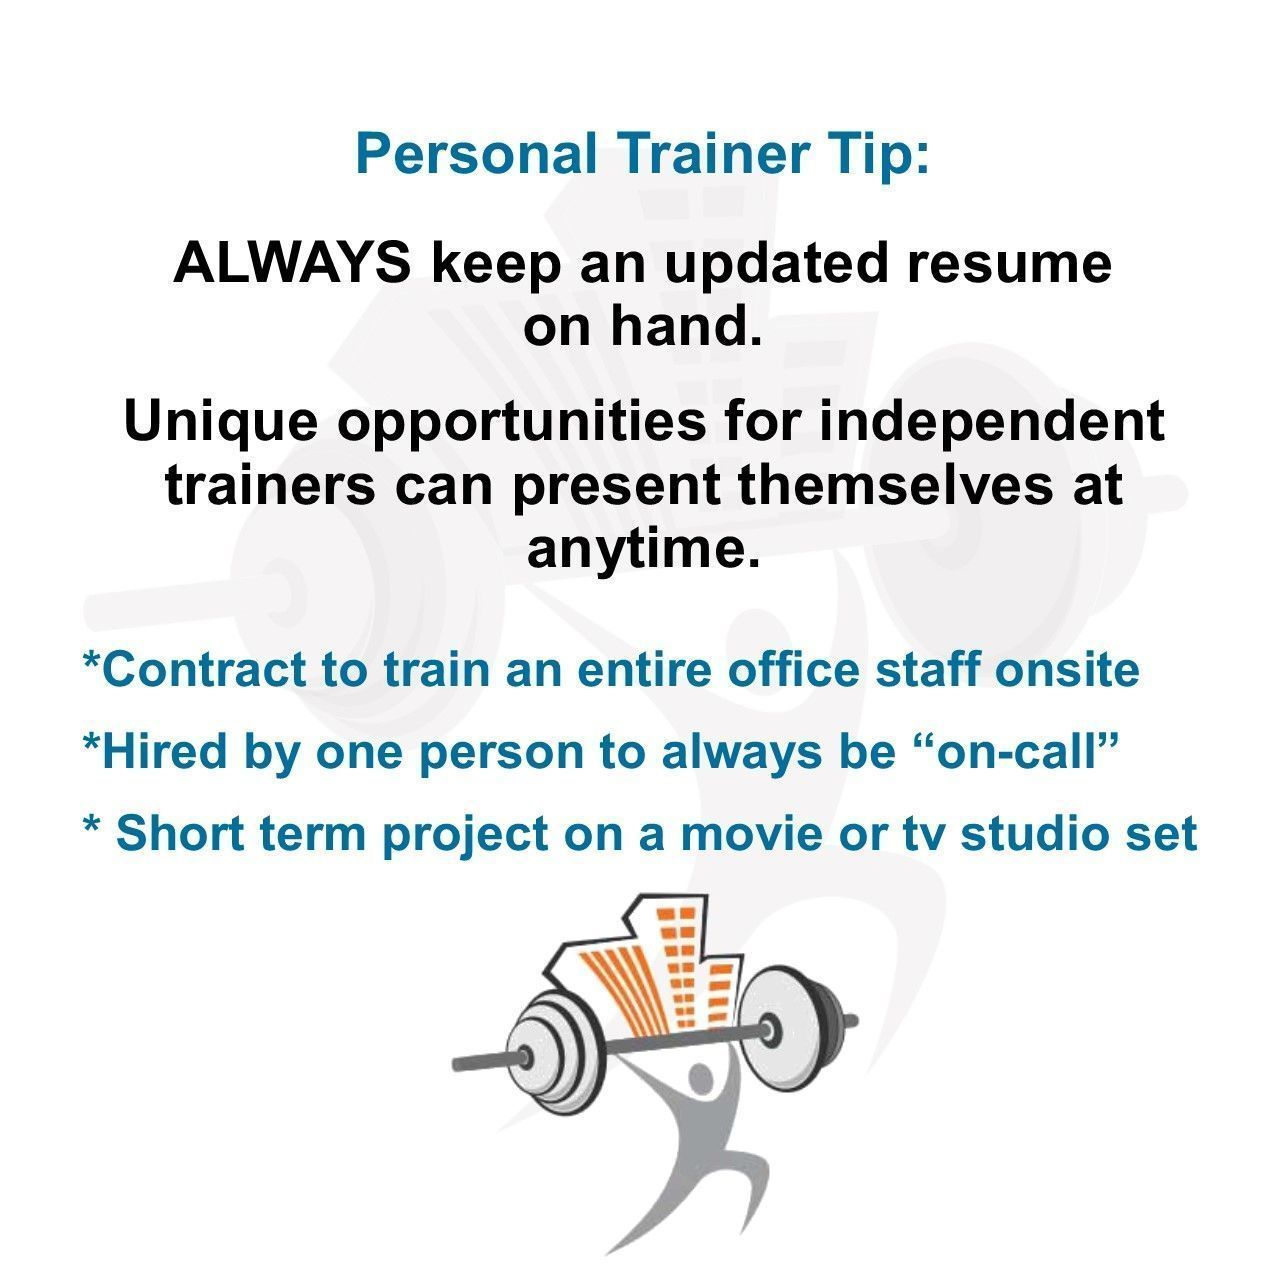 Resume For Personal Trainer Personal Trainer Tip Always Keep An Updated #resume On Handhere's .